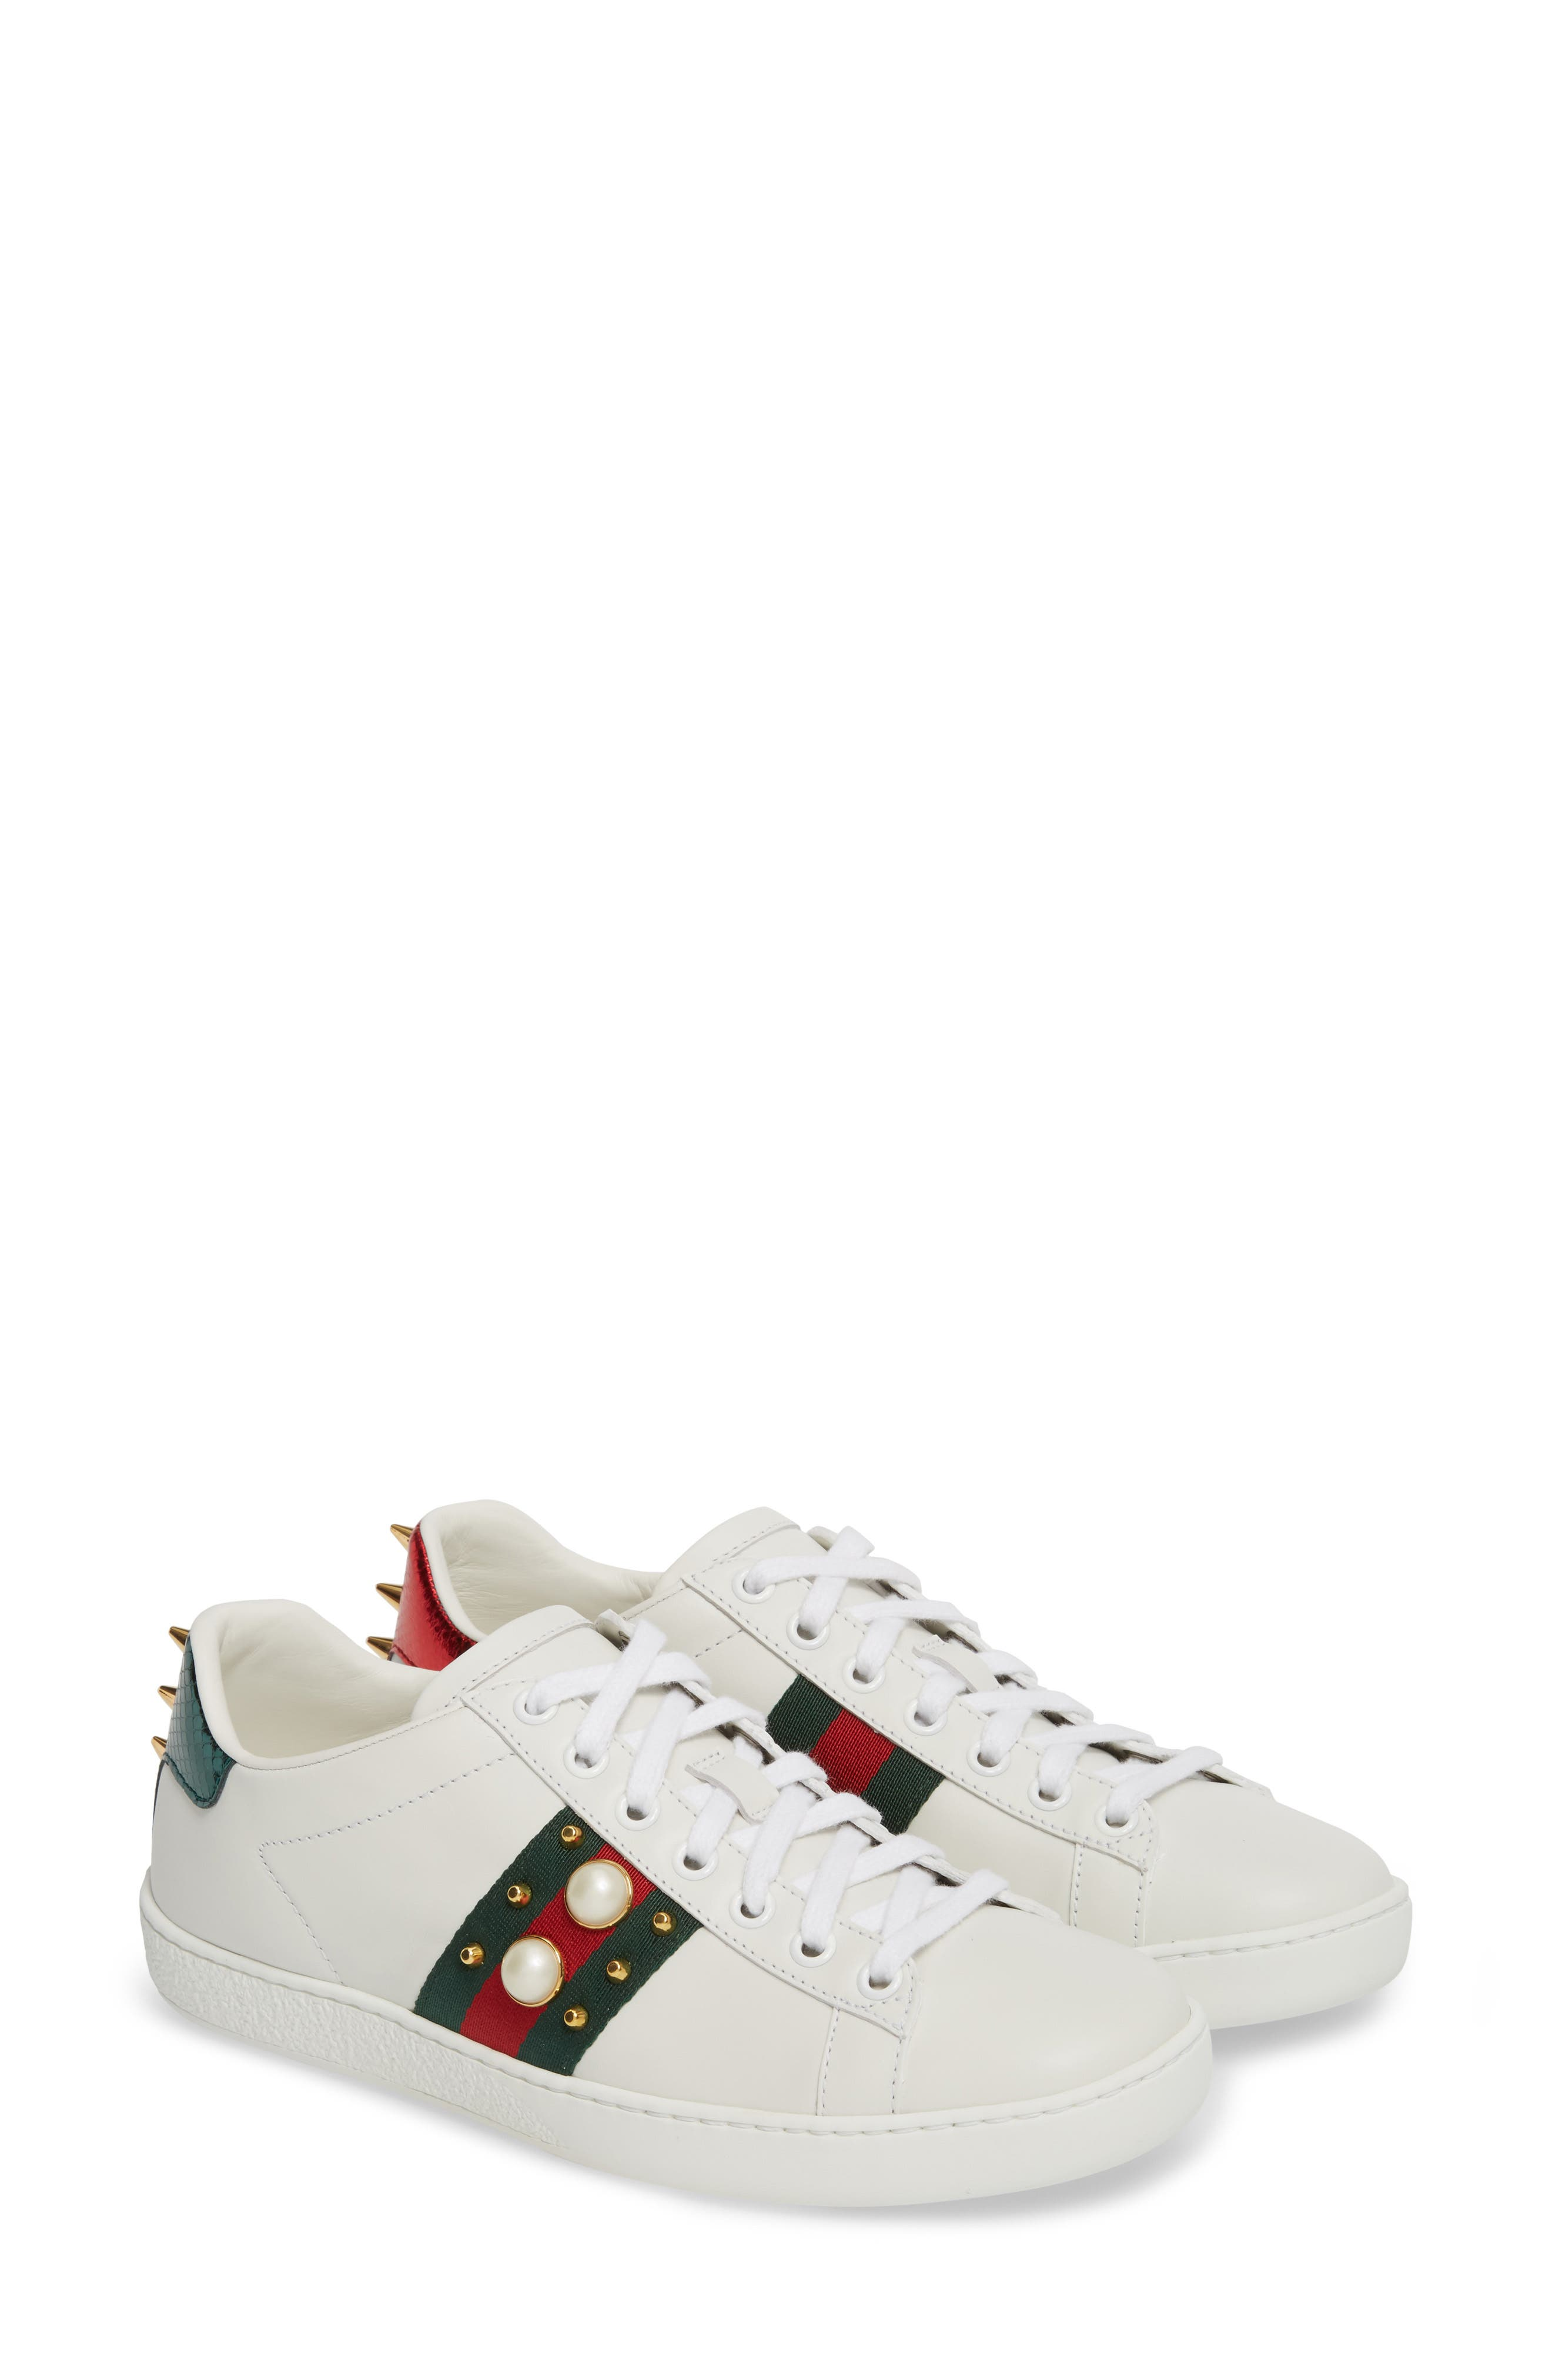 Gucci New Ace Low Top Sneaker, White